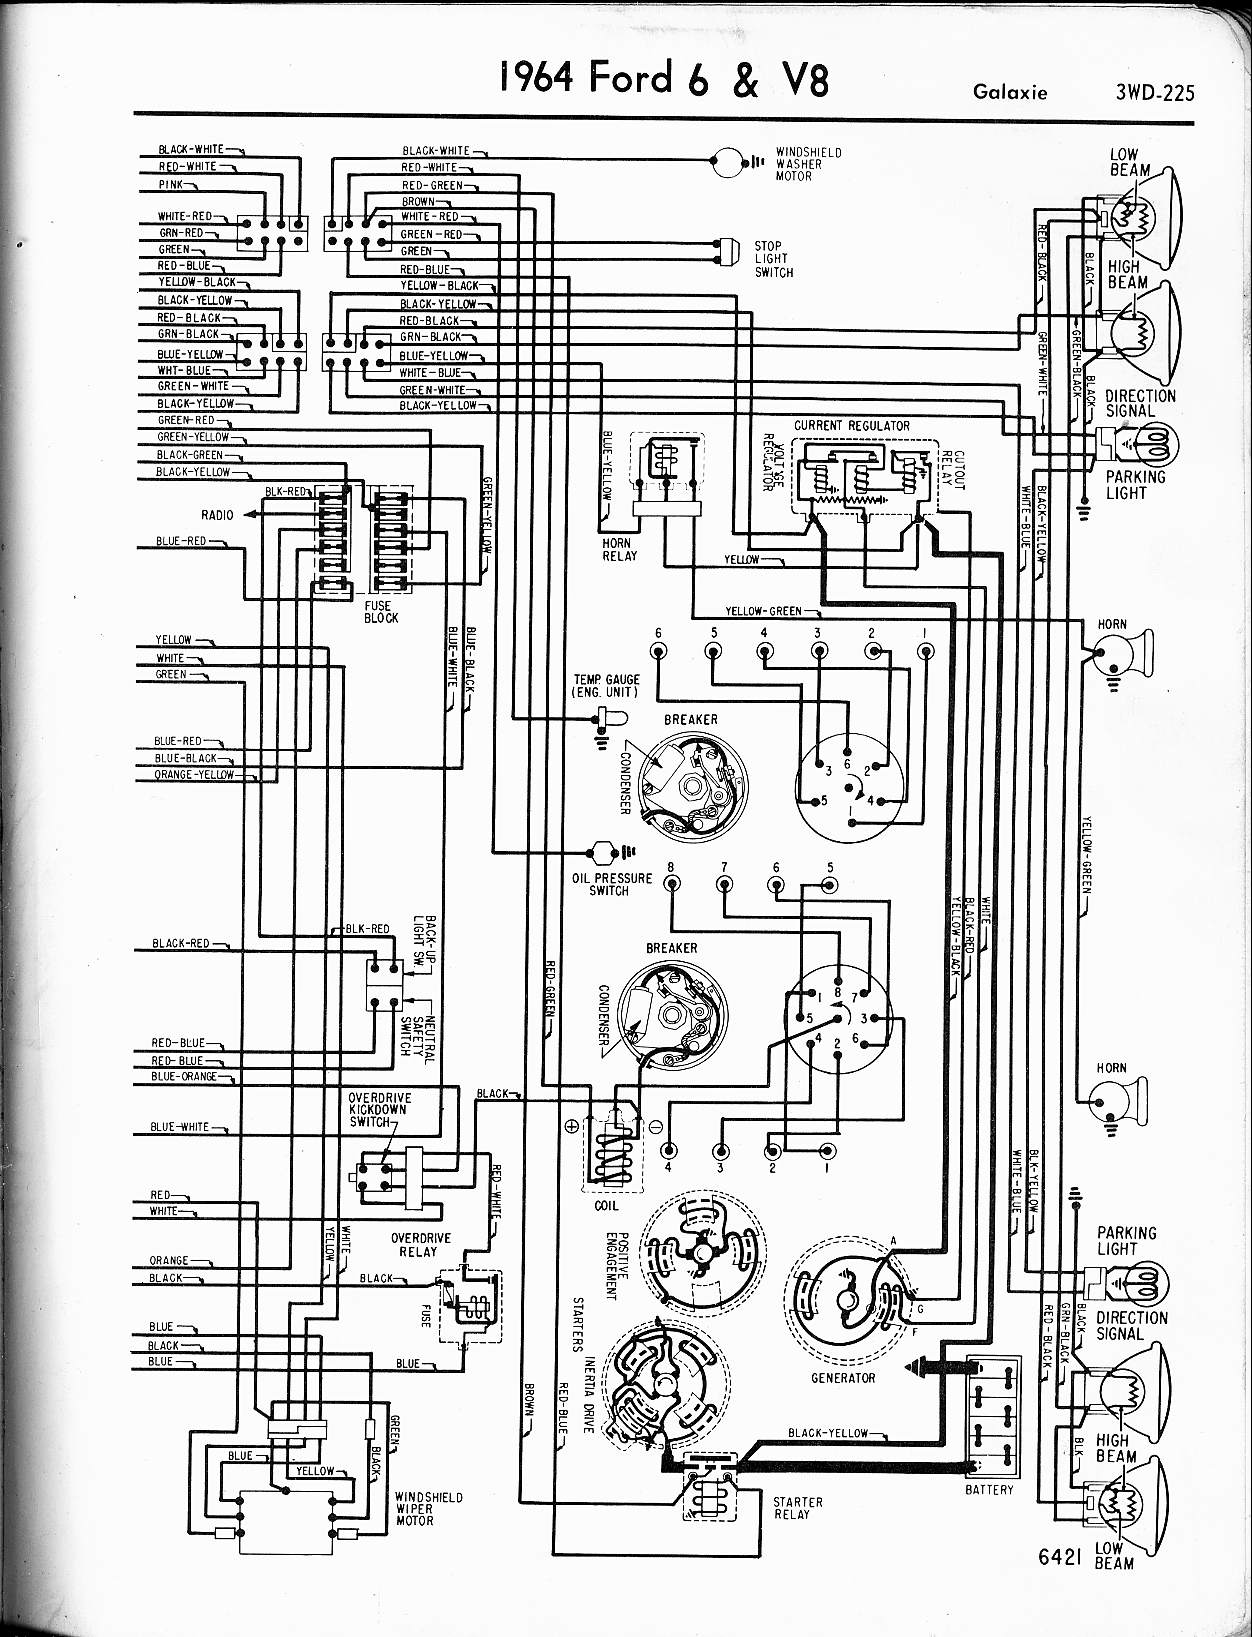 Ford Galaxie Cluster Wiring Diagram List Of Schematic Circuit Ltd Ec 256 57 65 Diagrams Rh Oldcarmanualproject Com